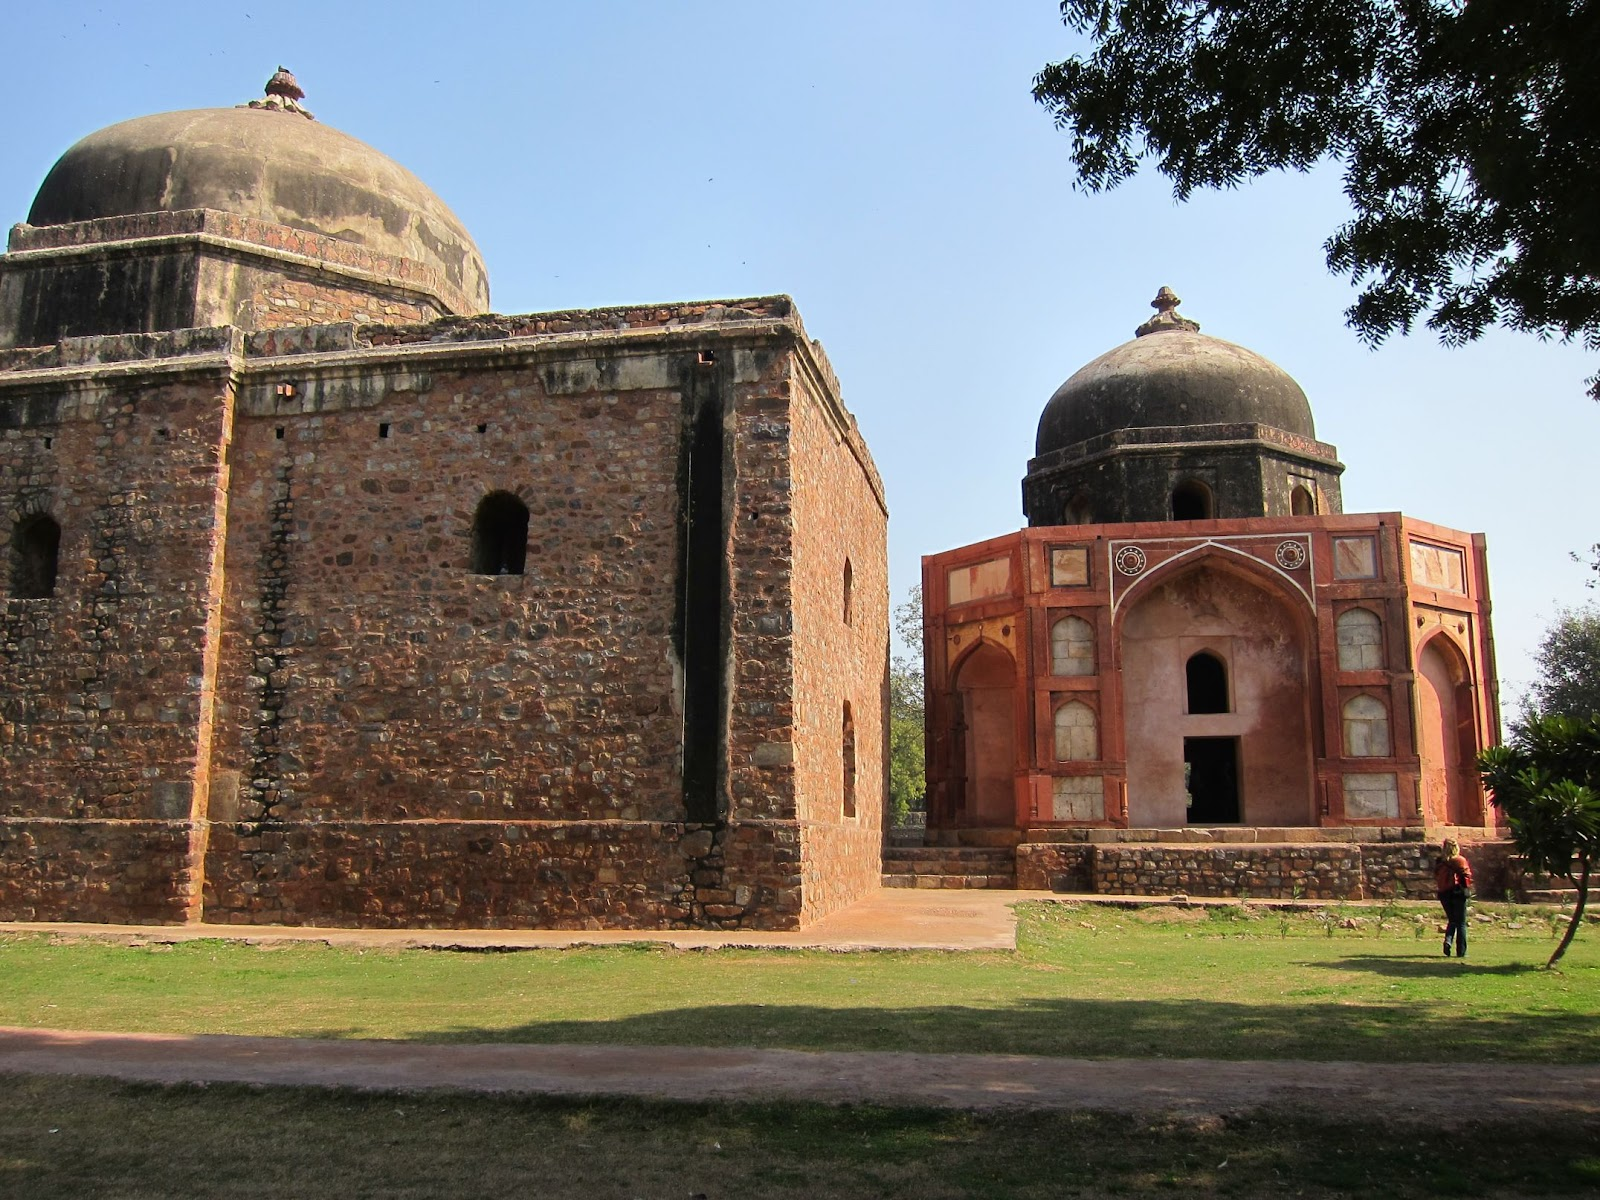 Worldtour 2011 - 2012: 8th February: Humayans Tomb, Red ...